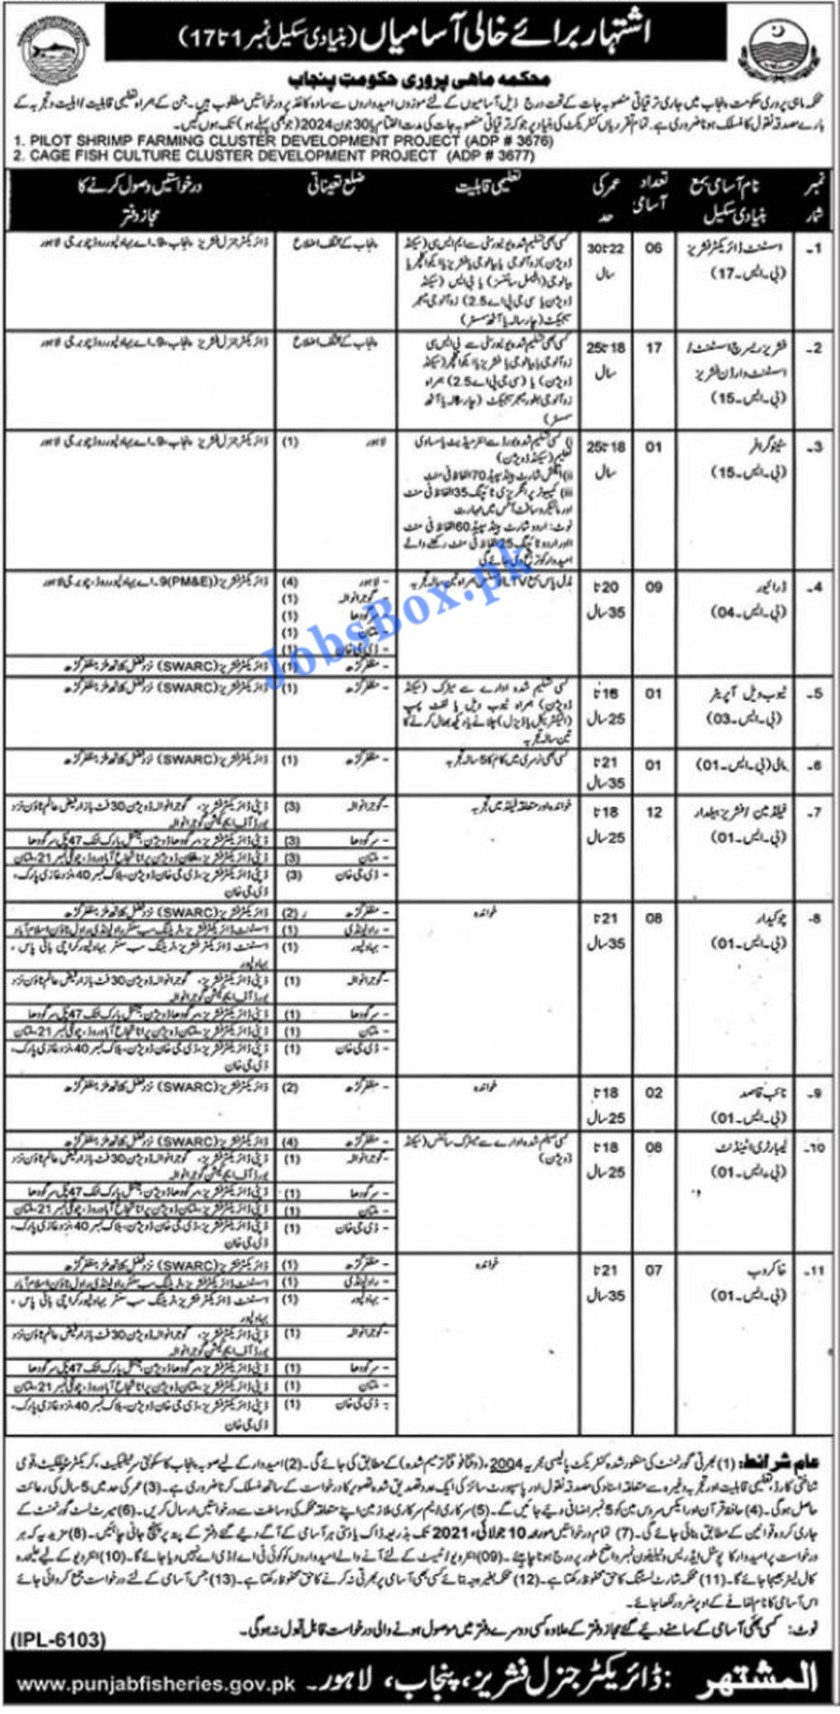 Fisheries Department Punjab Latest Jobs 2021 – BPS-01 to BPS-17 Recruitment